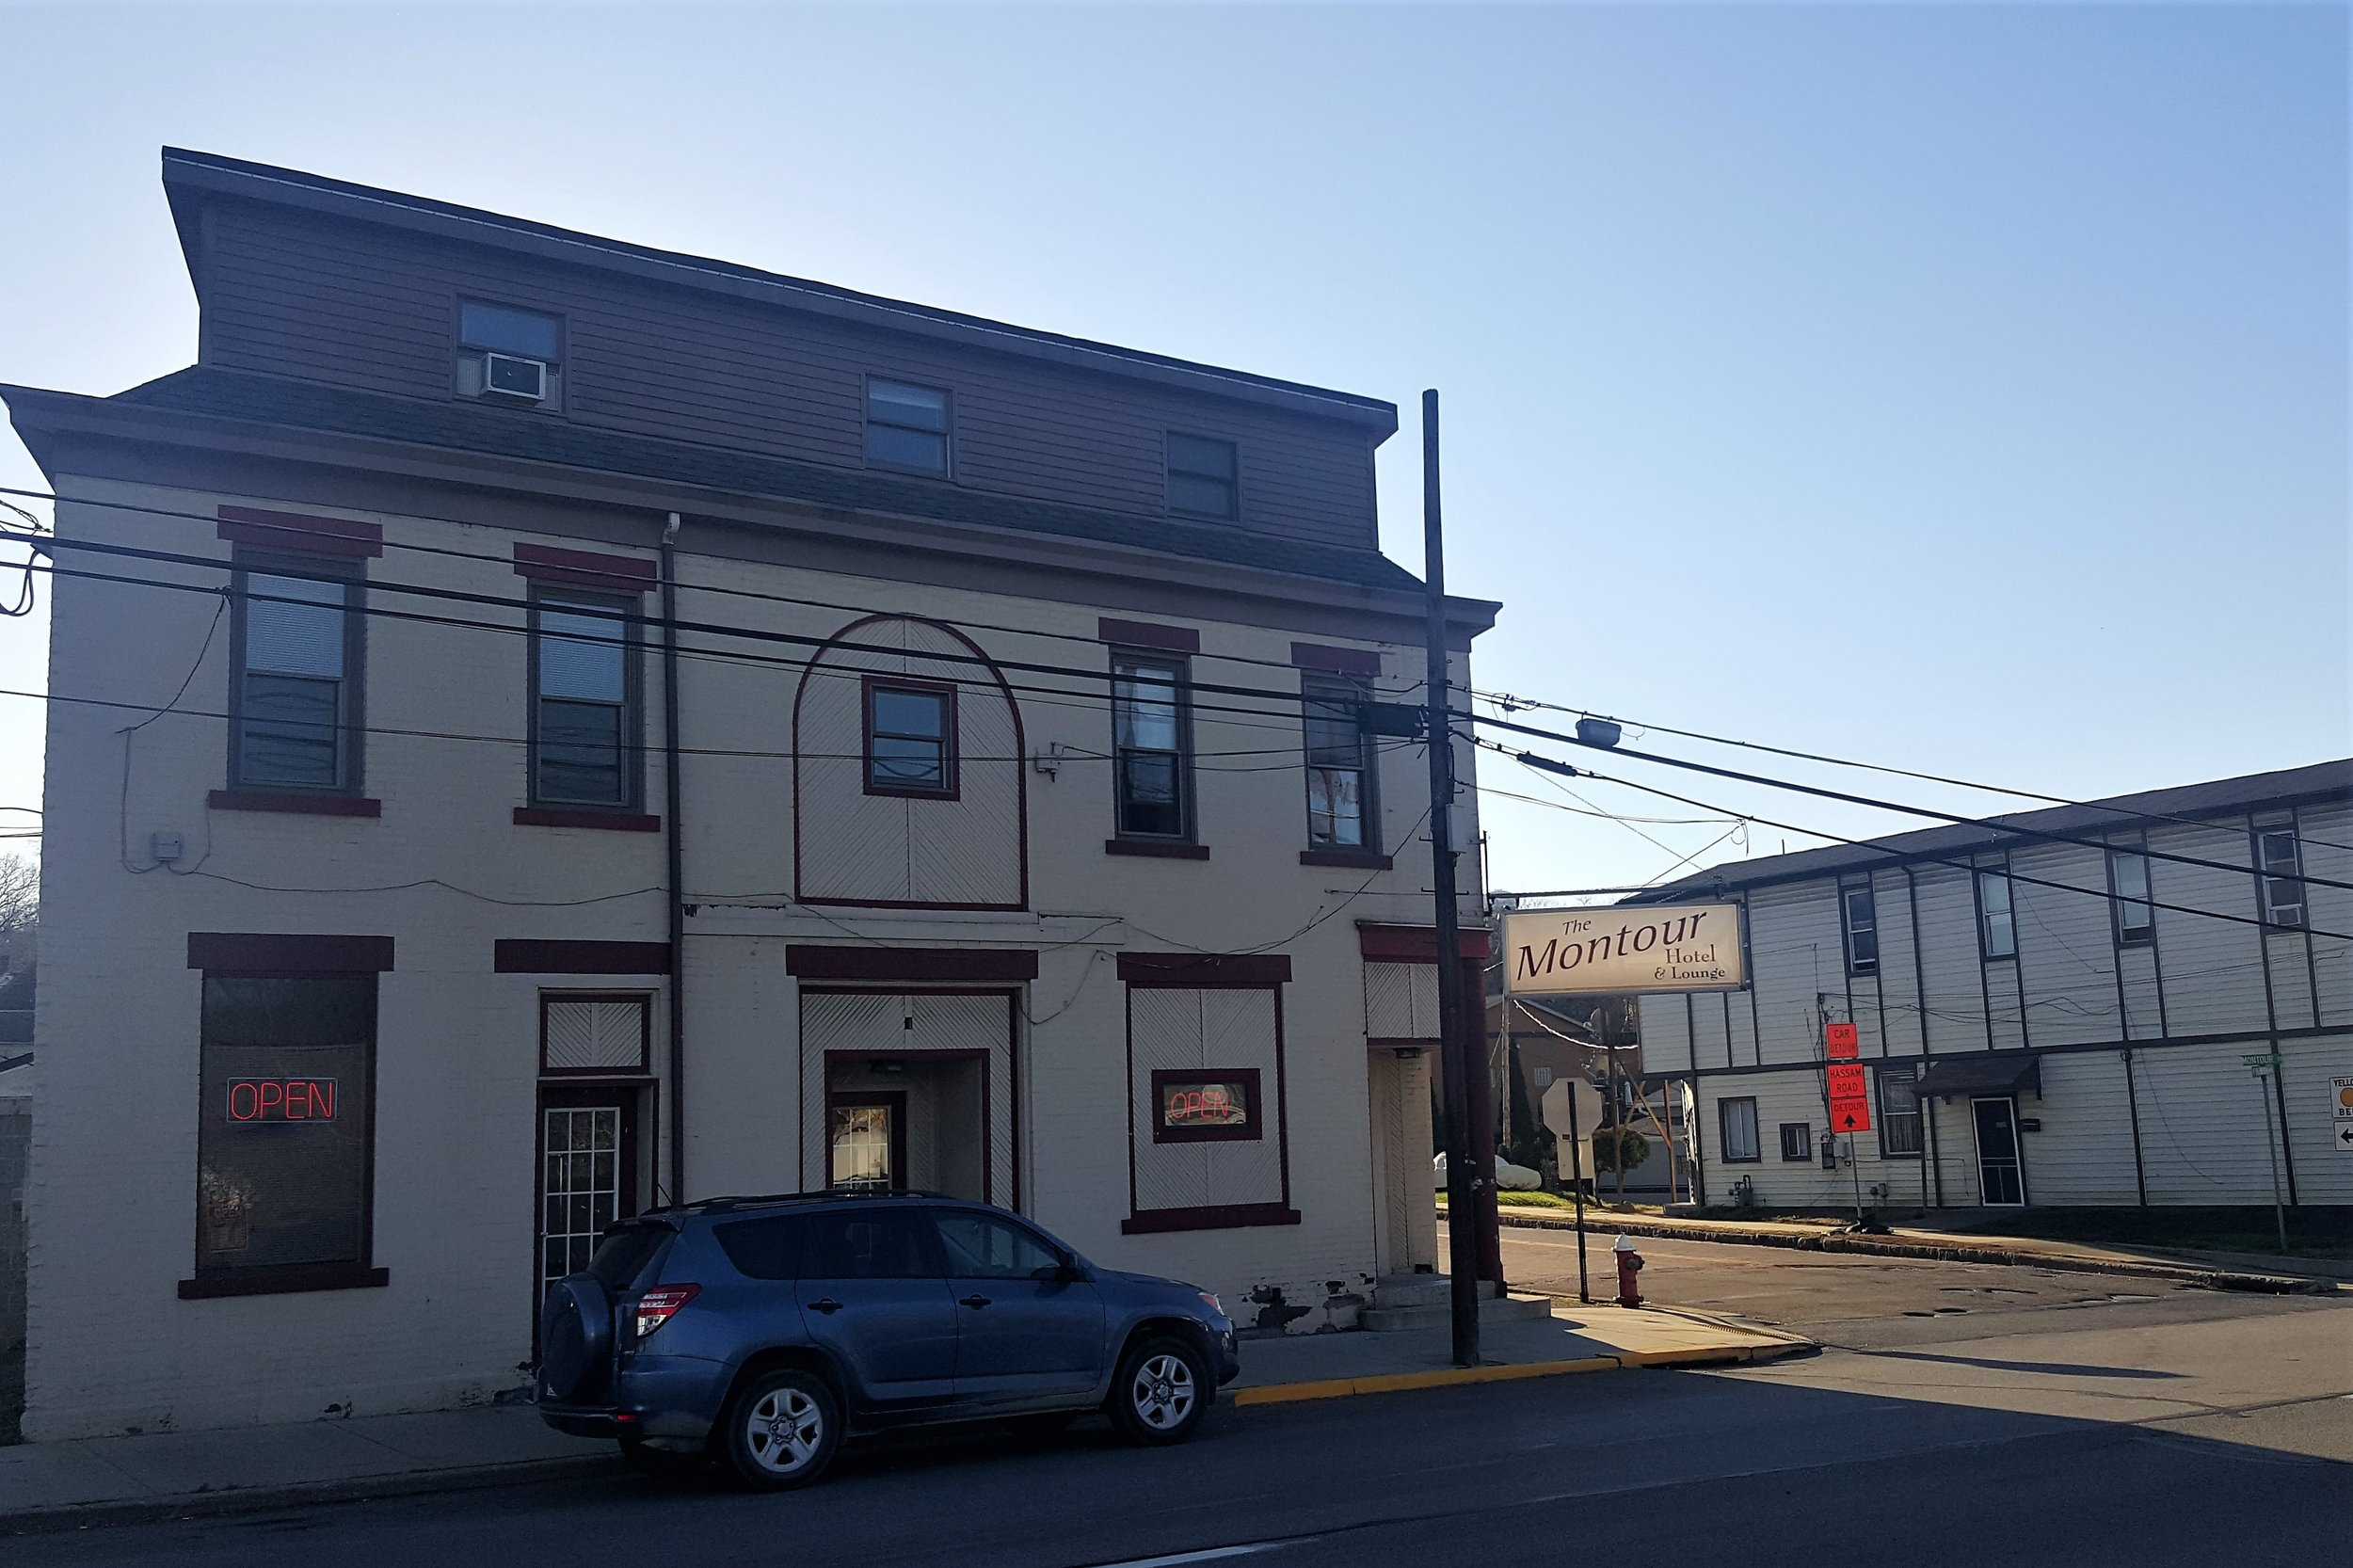 The Montour Hotel & Lounge - 1500 4th Ave, (412) 264-9633